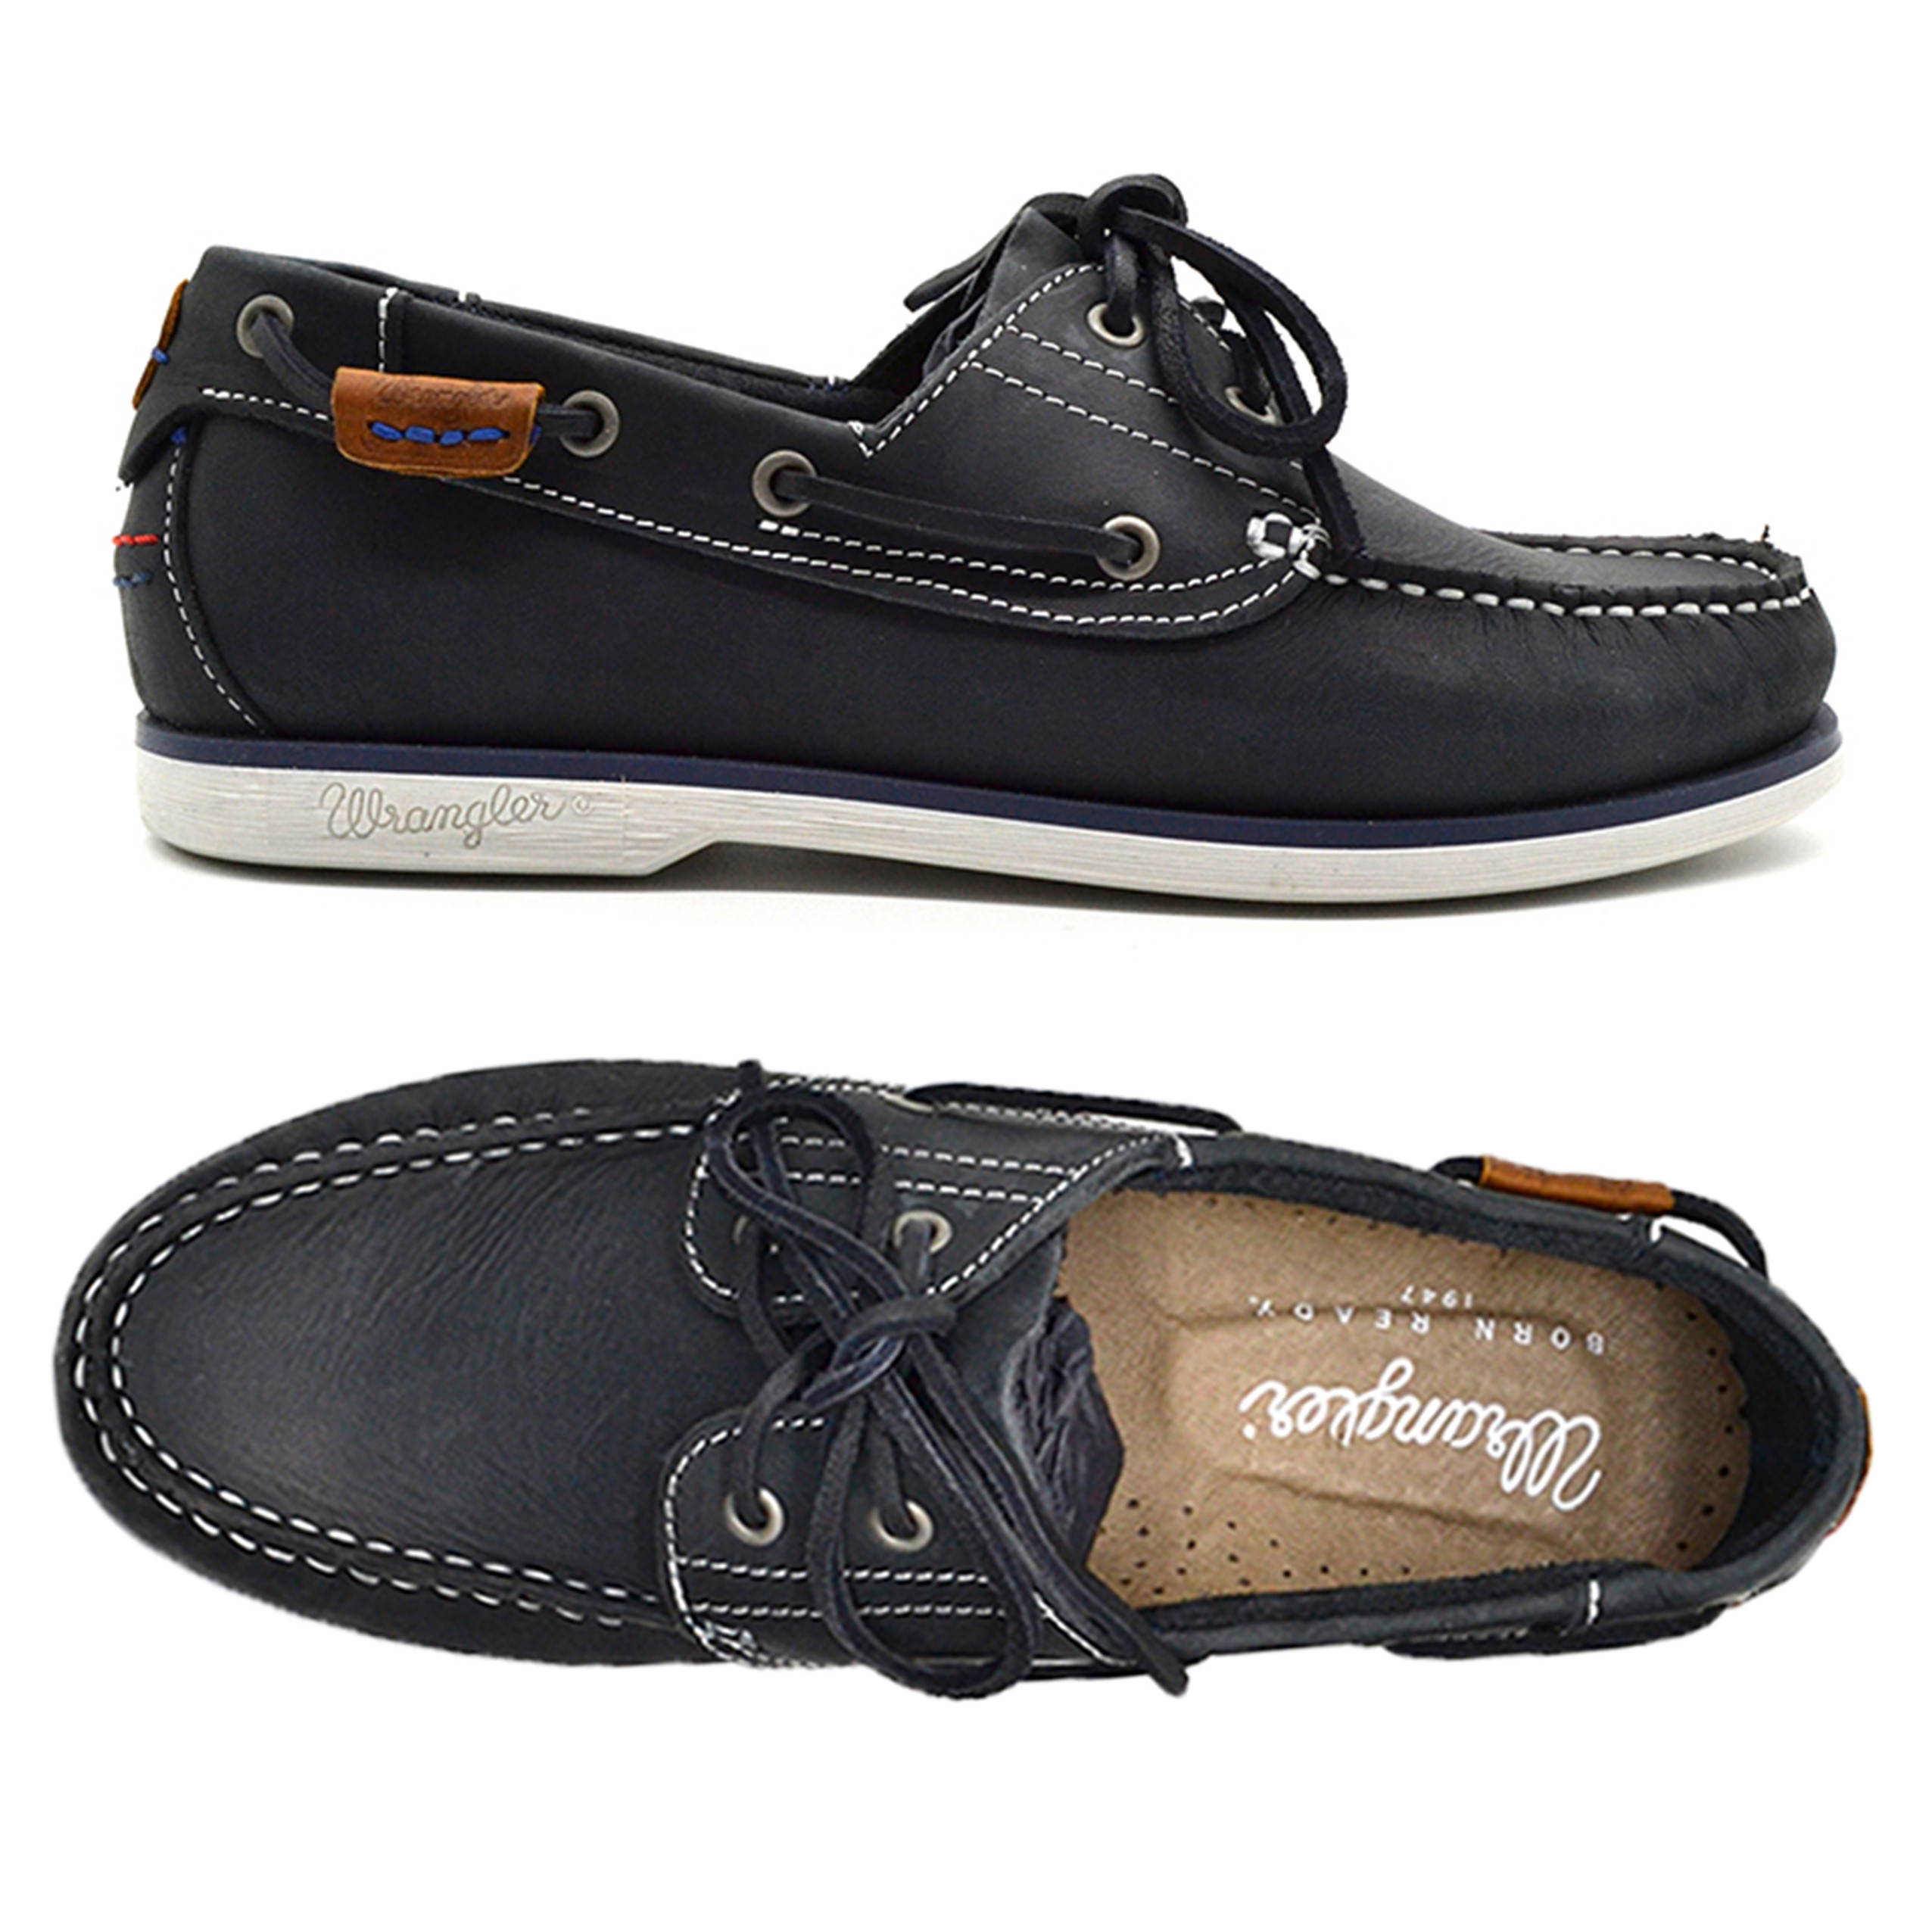 Wrangler Mens Low Ocean Leather Boat Shoes Navy Shoes